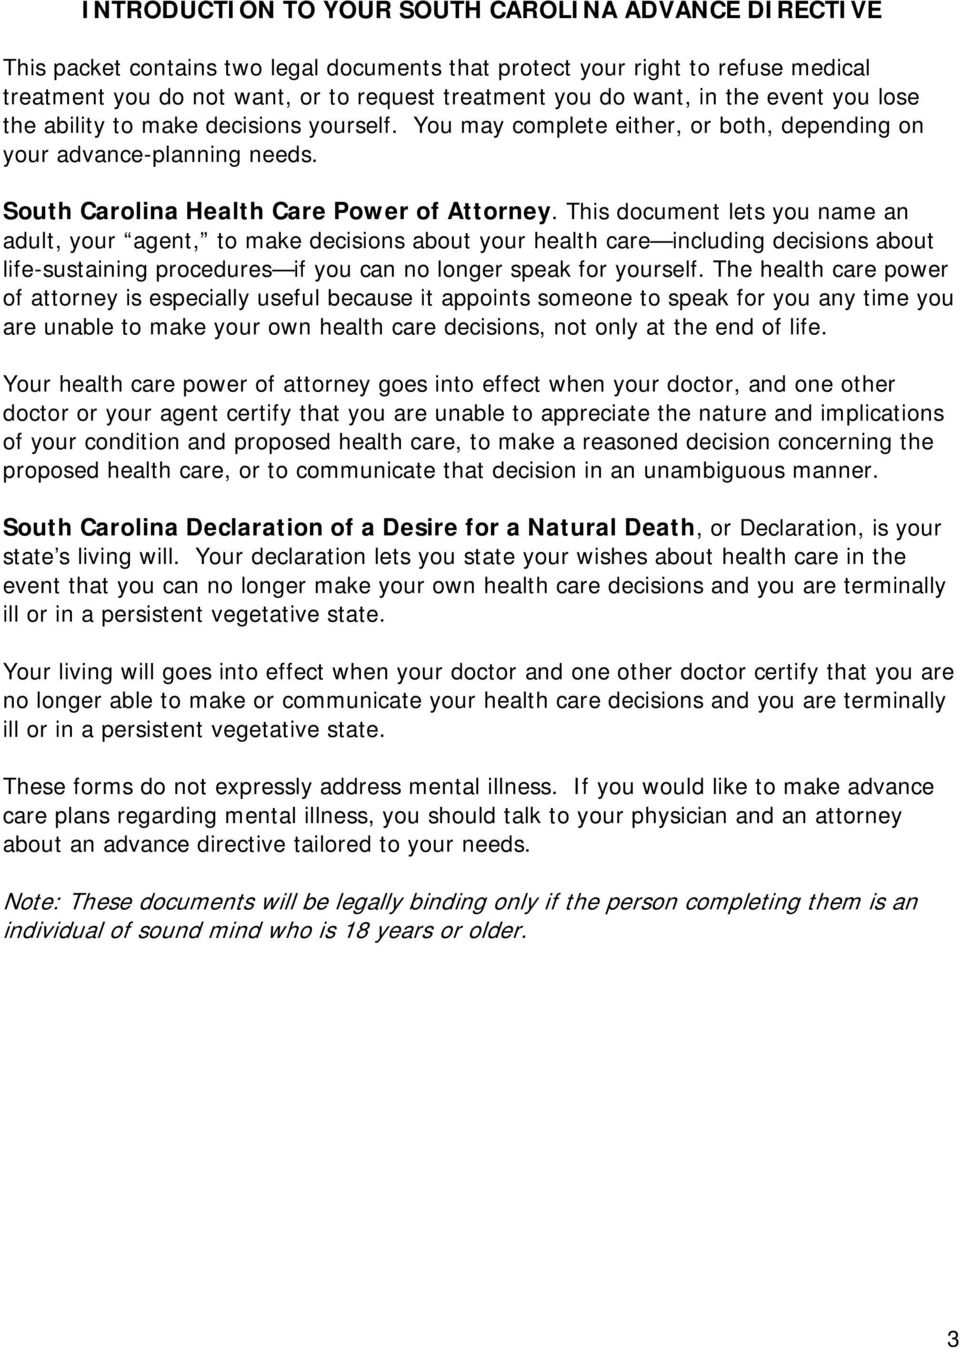 This document lets you name an adult, your agent, to make decisions about your health care including decisions about life-sustaining procedures if you can no longer speak for yourself.